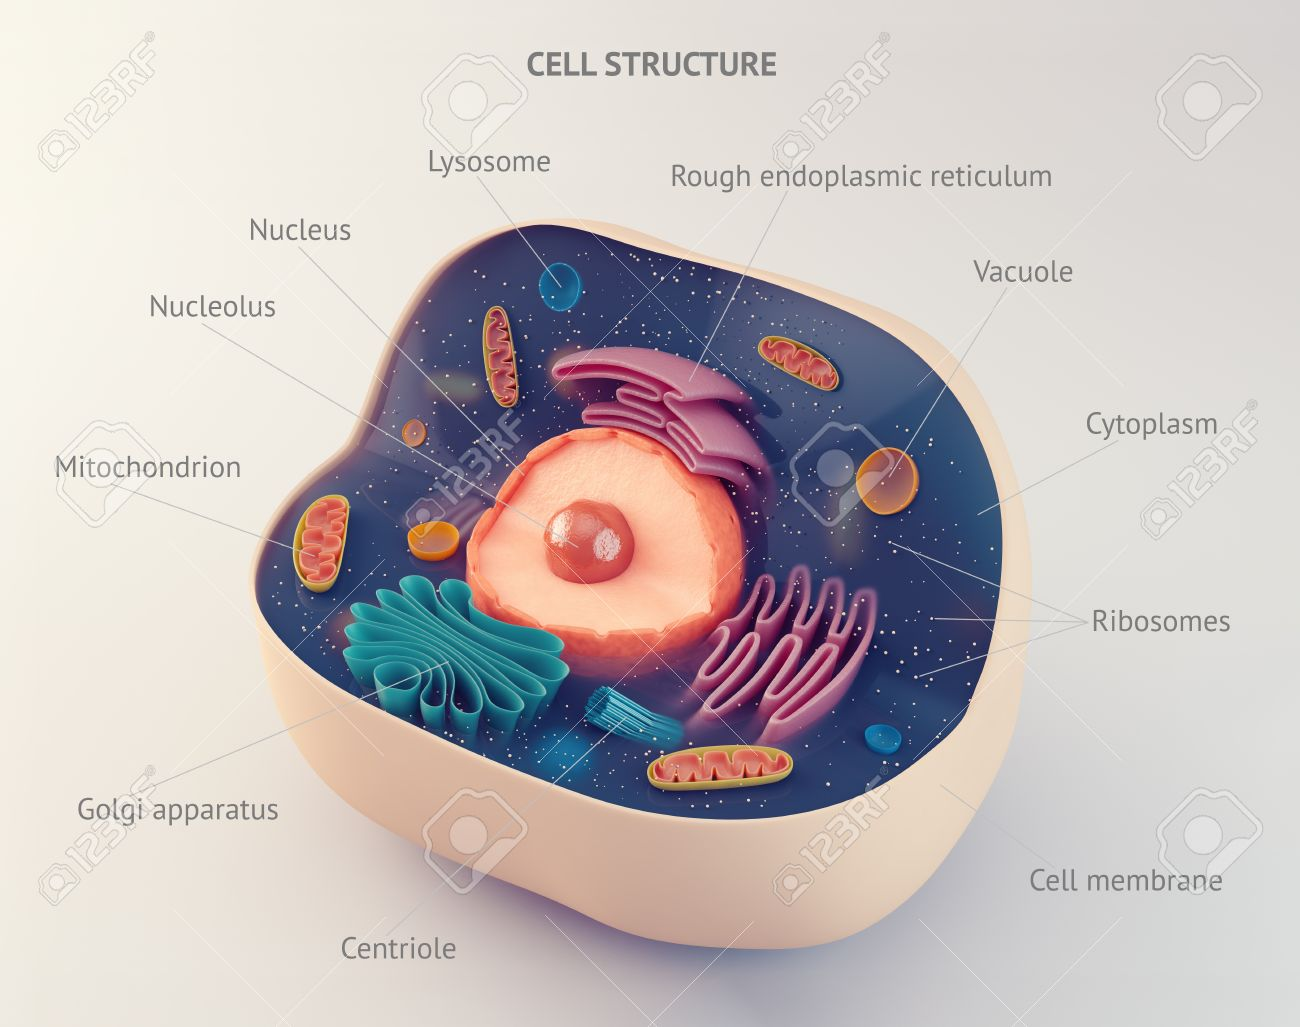 Anatomical Structure Of Biological Animal Cell With Organelles Stock     Anatomical structure of biological animal cell with organelles Stock Photo    55829406